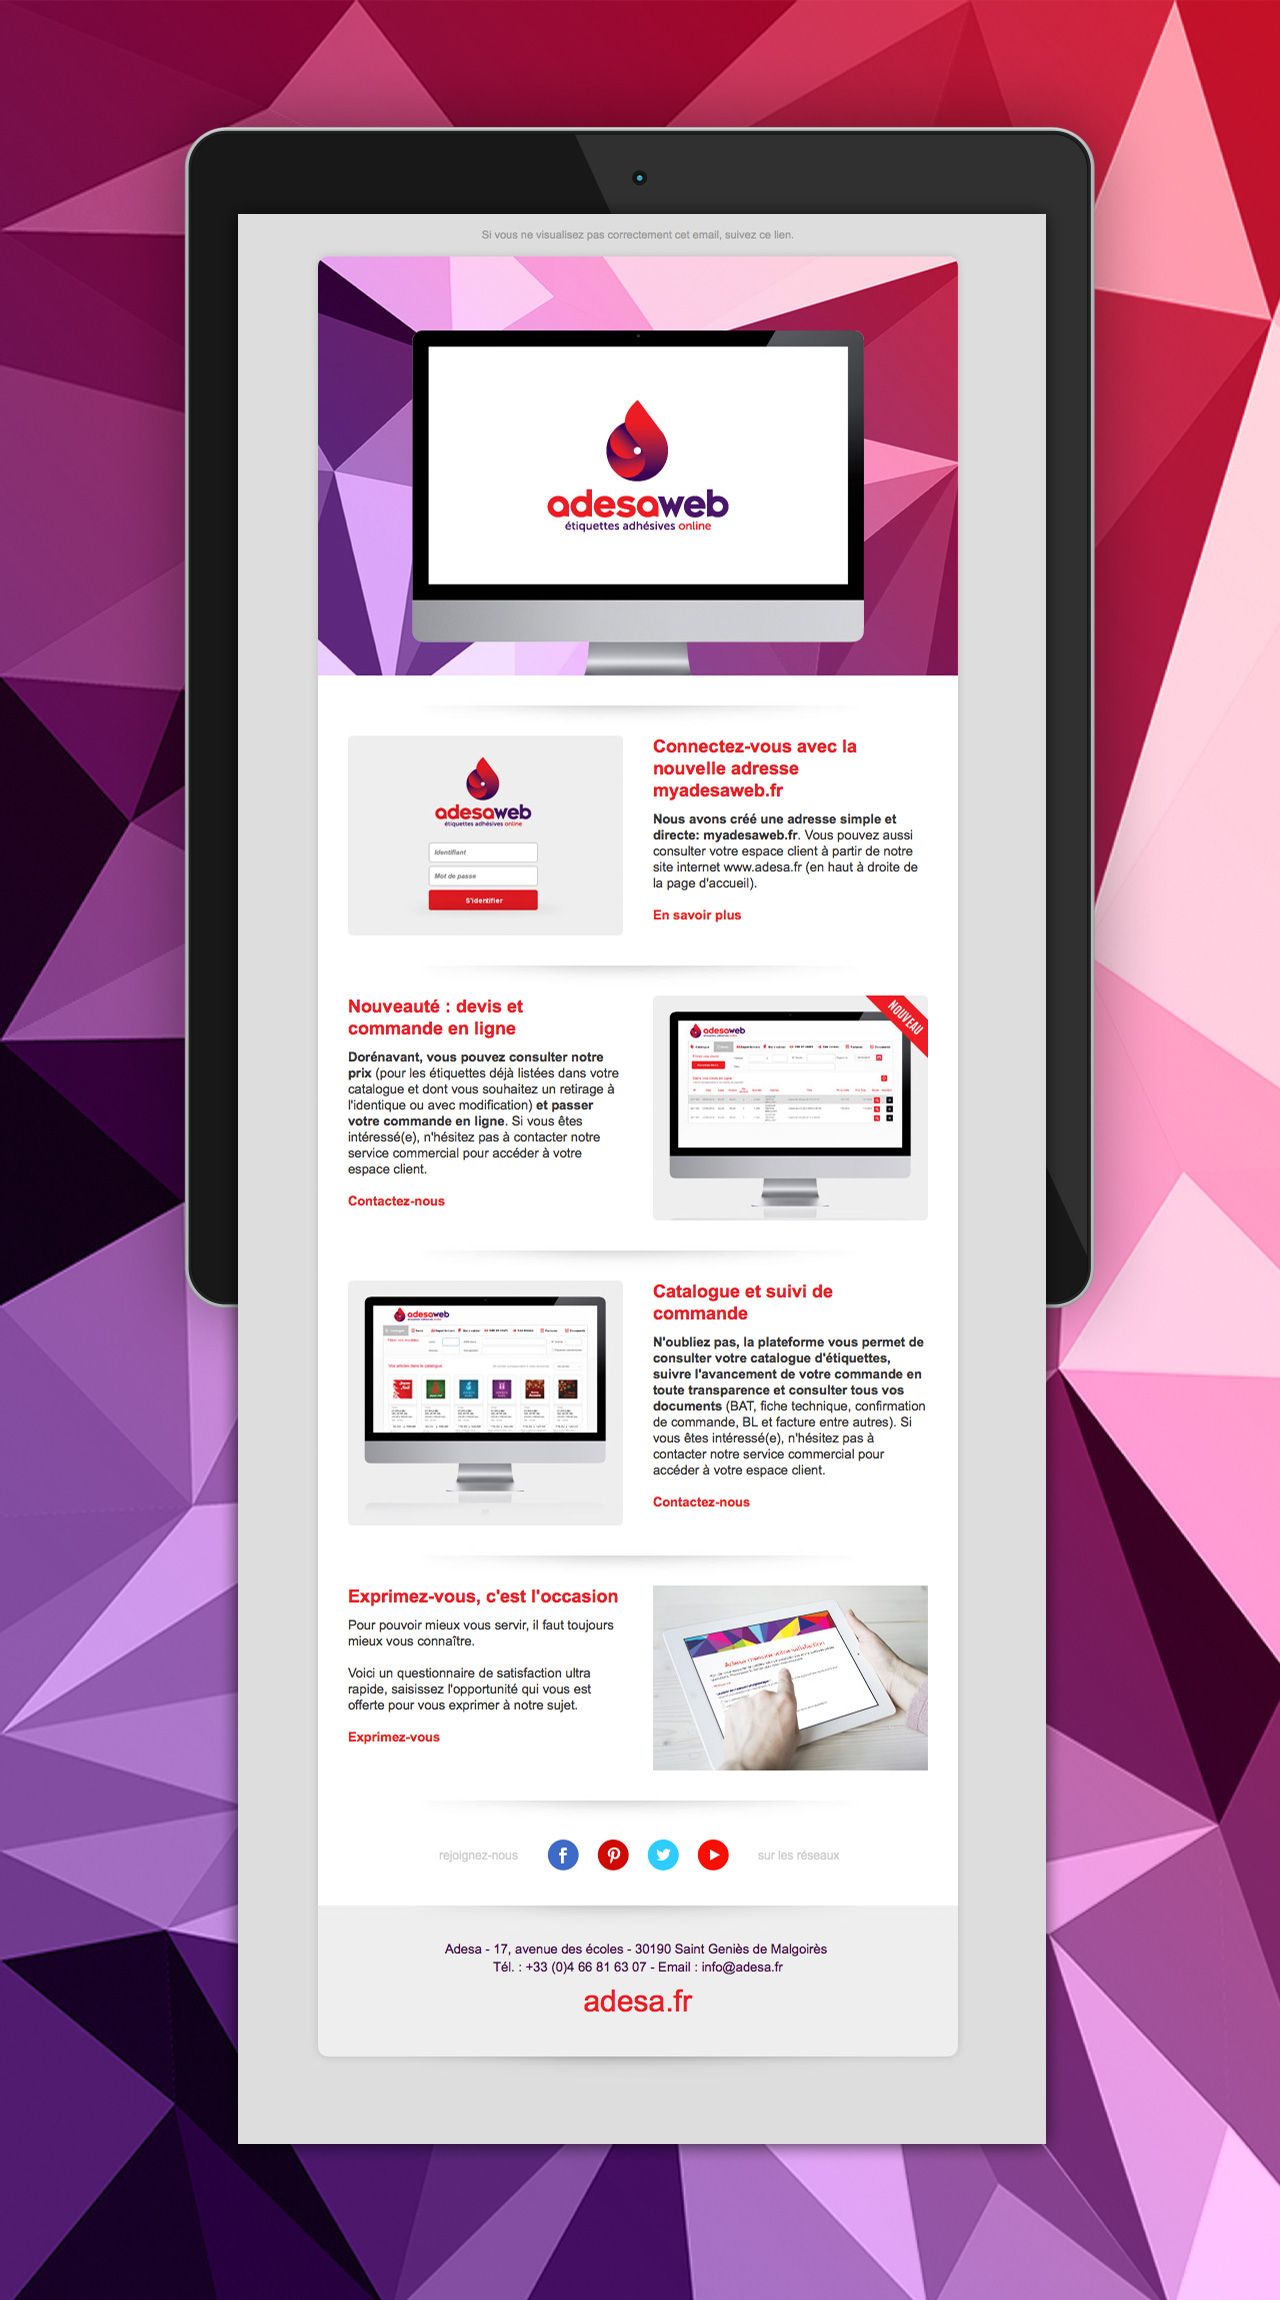 adesa-newsletter-design-creation-communication-caconcept-alexis-cretin-graphiste